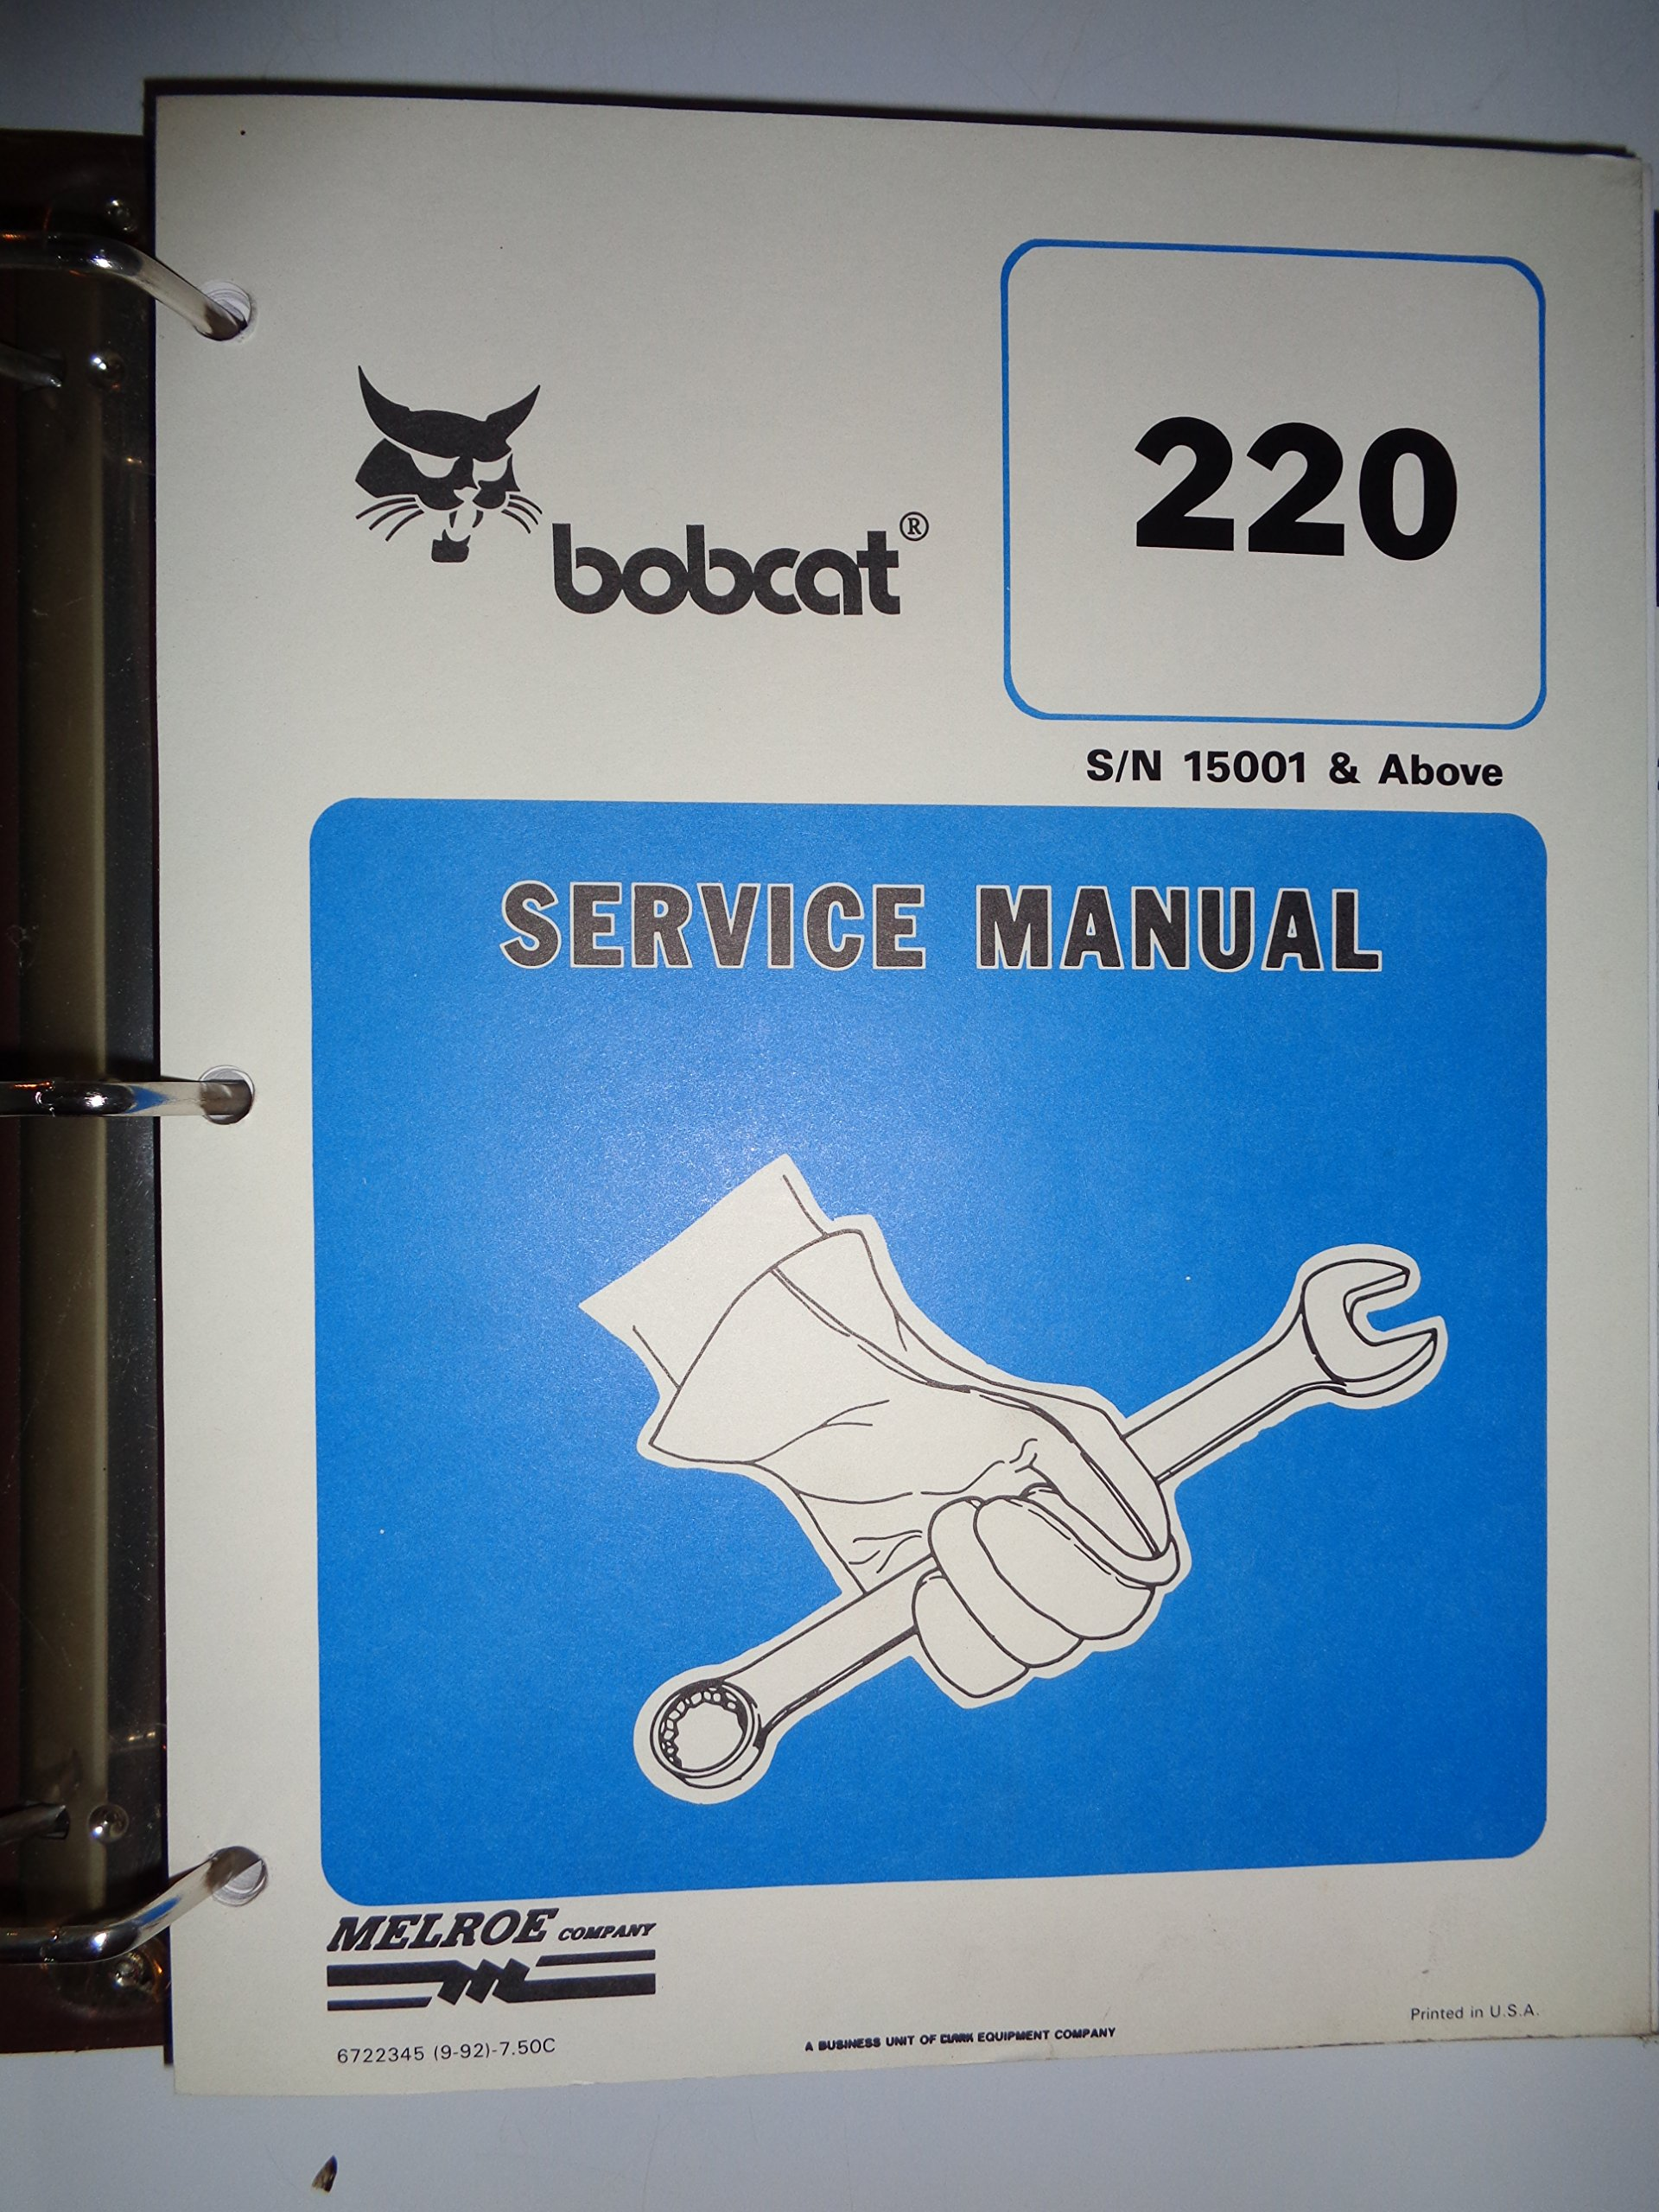 Bobcat 220 Excavator (s/n 15, 001 and above) Service Manual